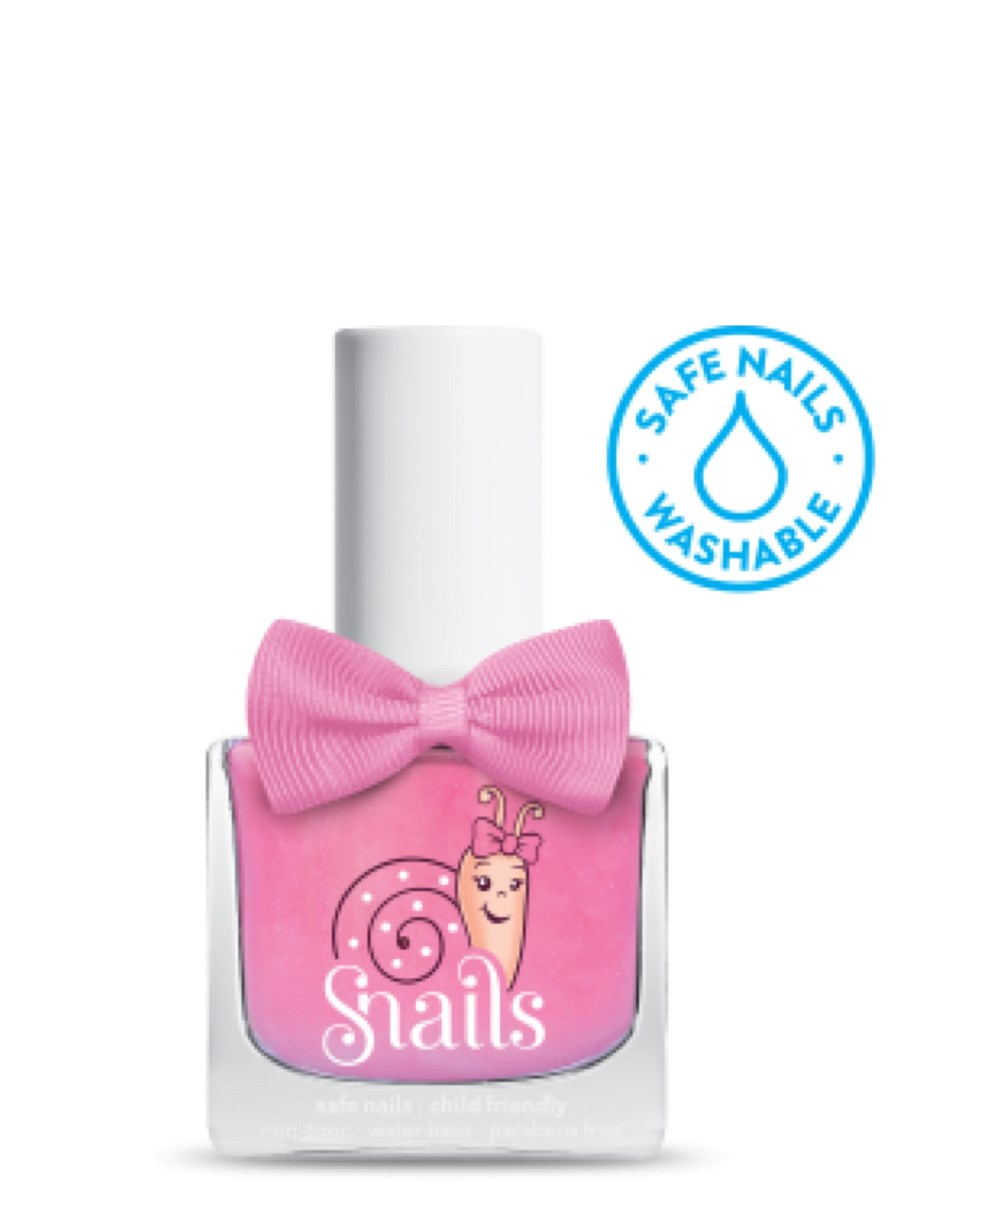 Snails Nail Polish - Toothfairy